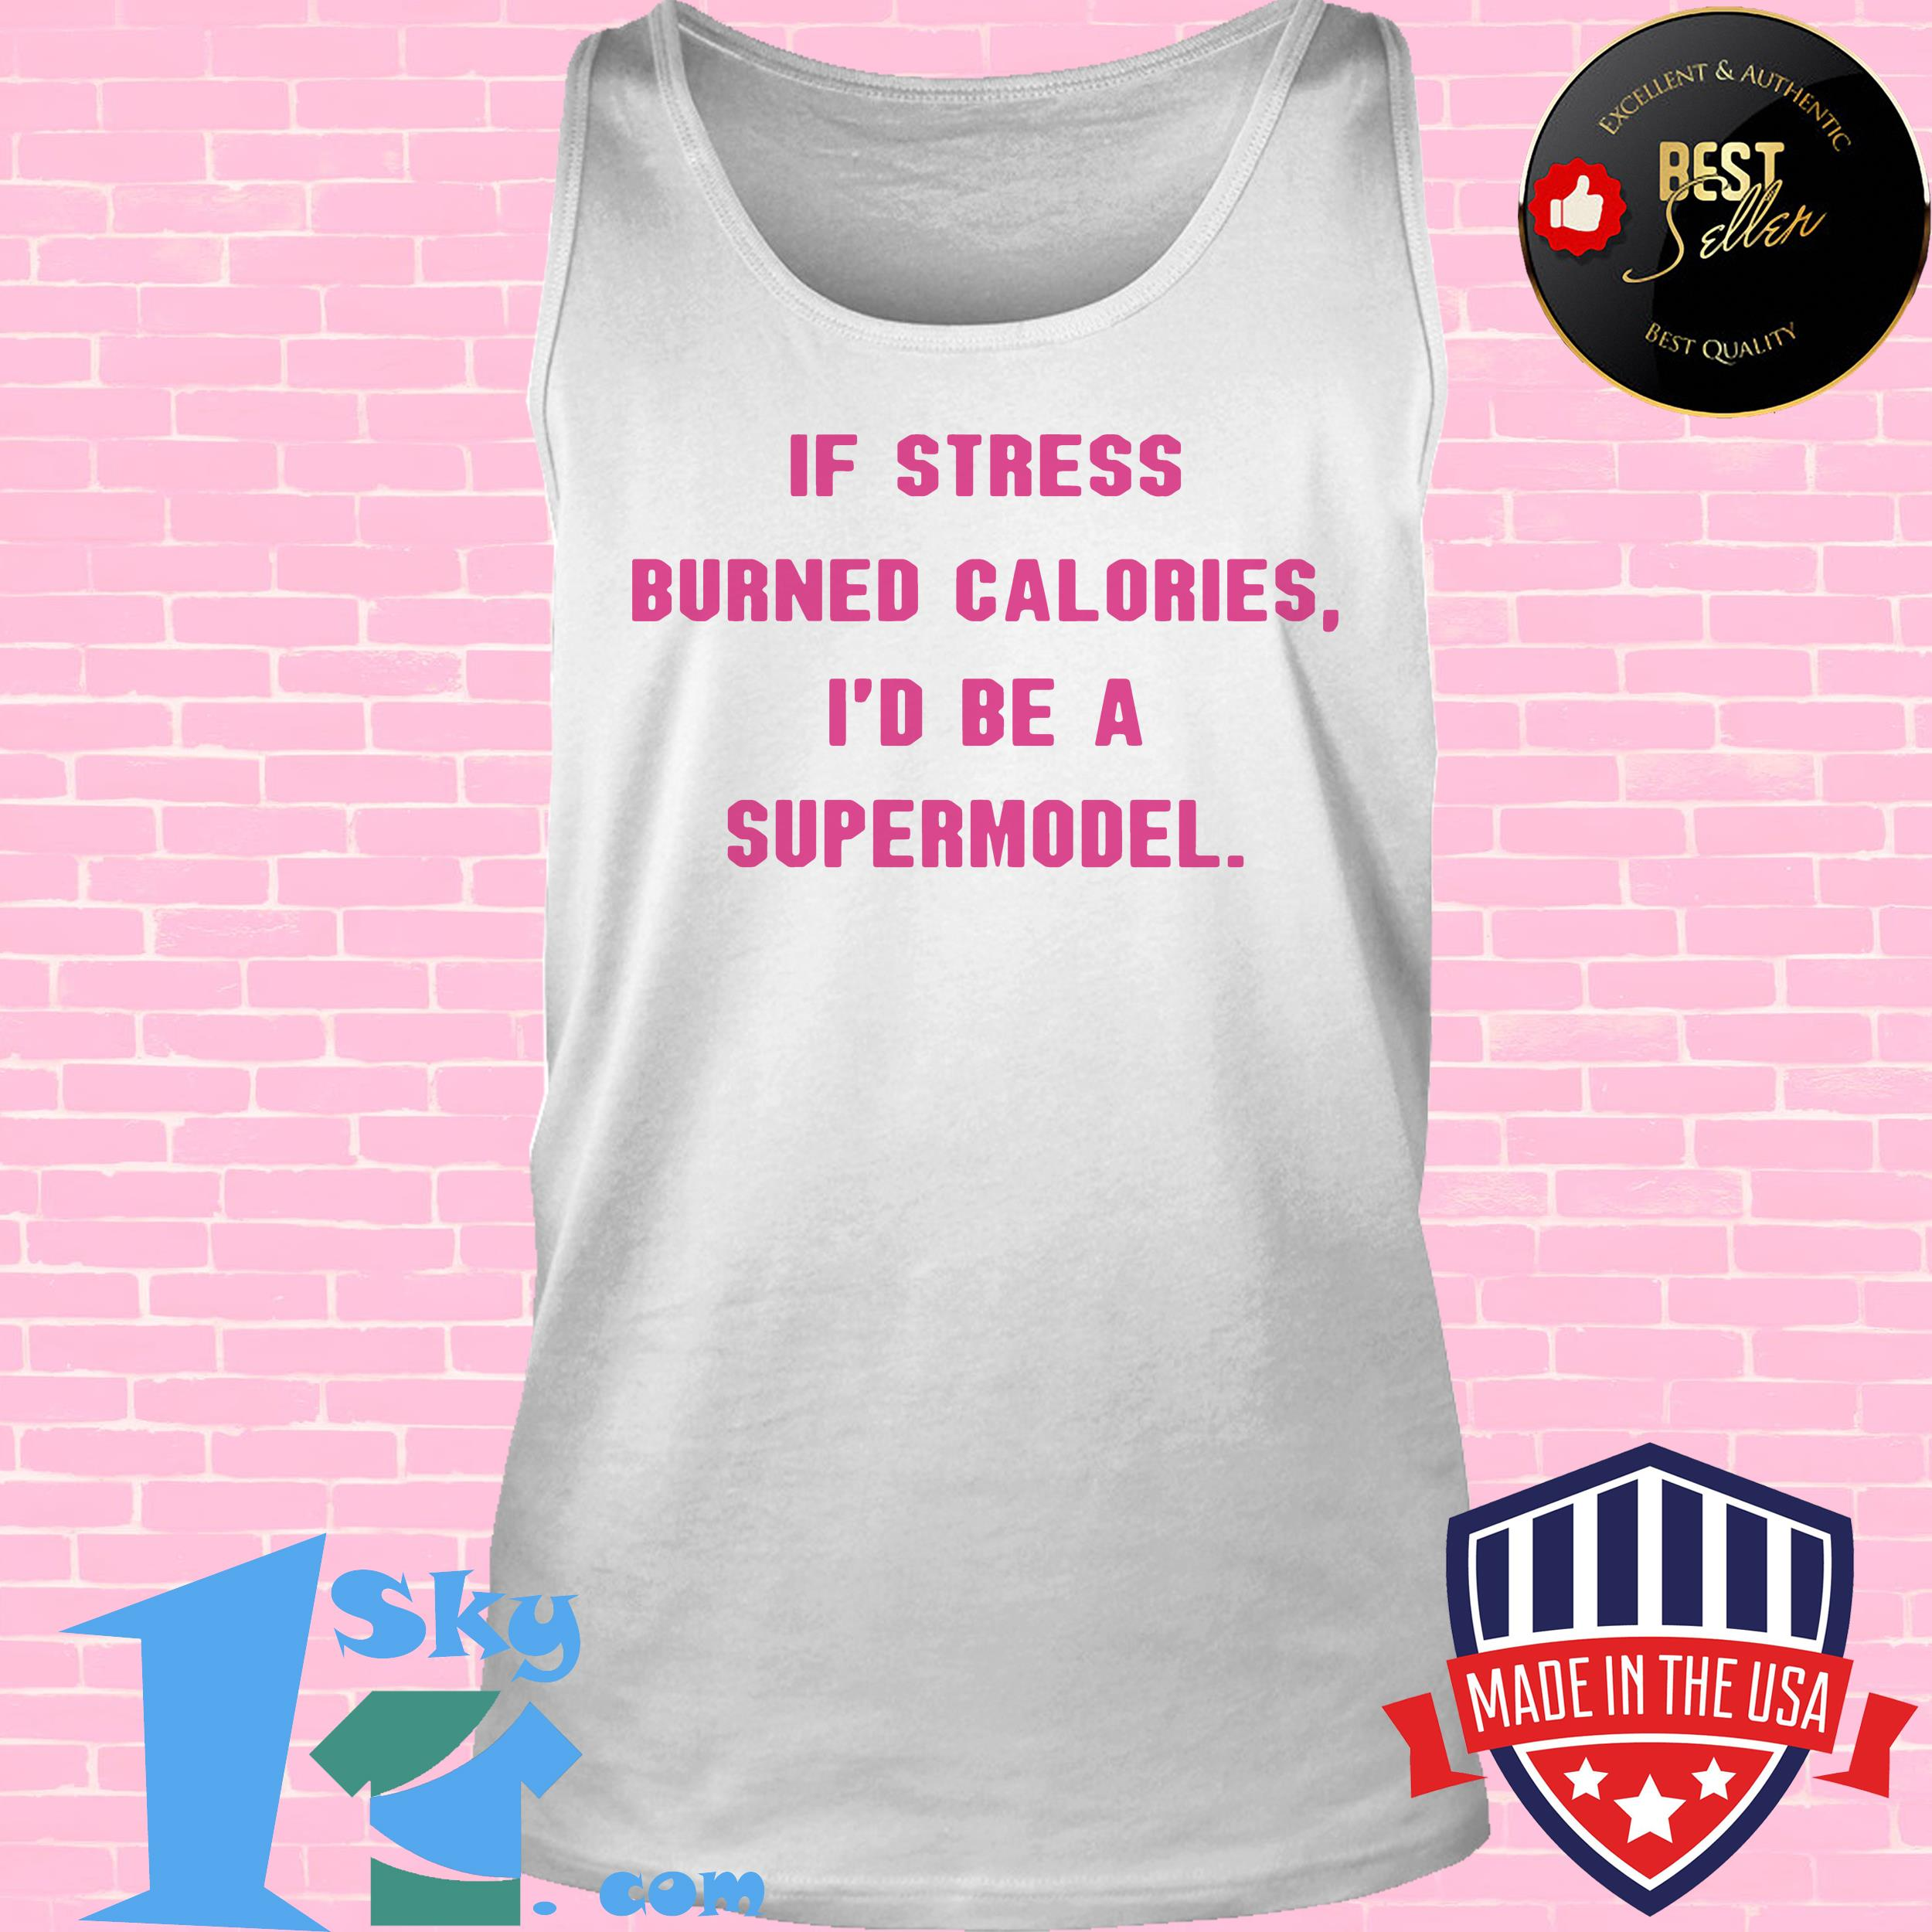 if stress burned calories id be a supermodel tank top - If Stress Burned Calories I'd Be A Supermodel shirt